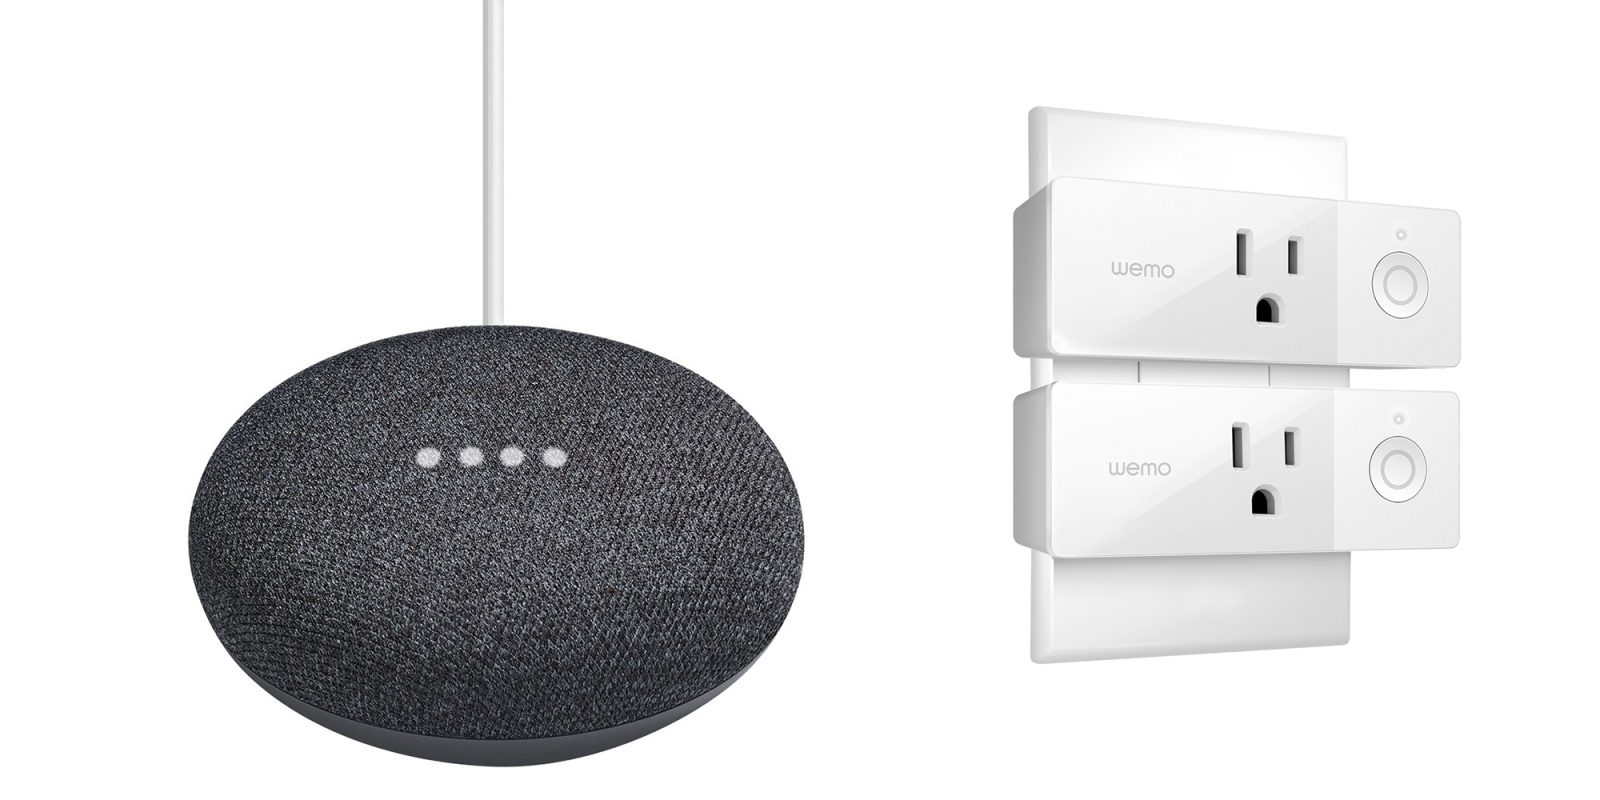 Target will sell you two Google Home minis with two Wemo Smart Plugs